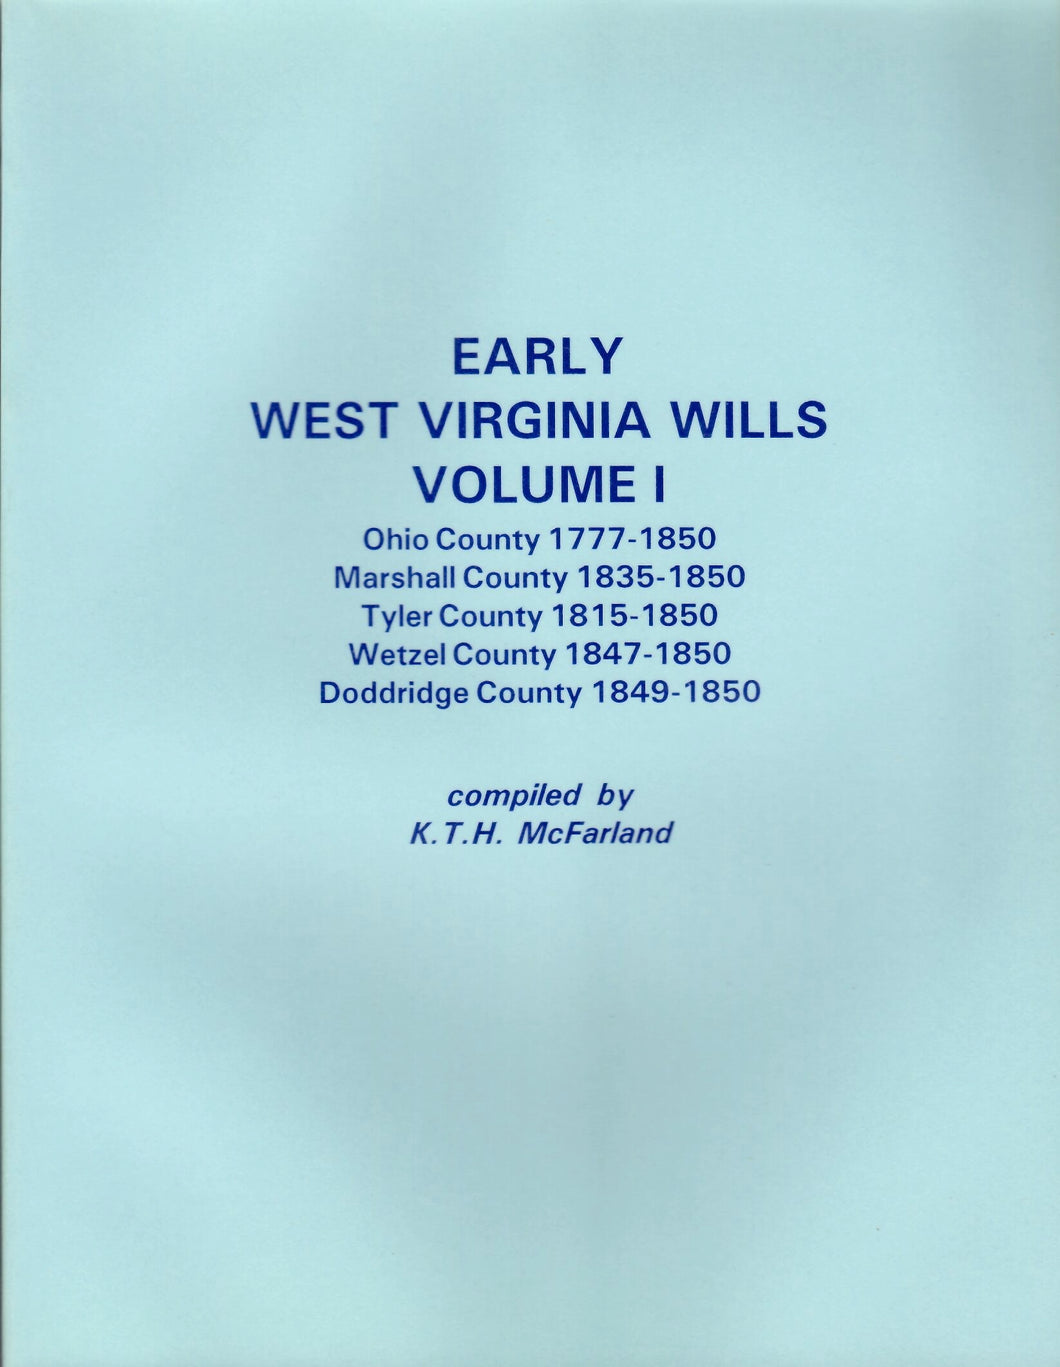 Early West Virginia Wills, Volume I